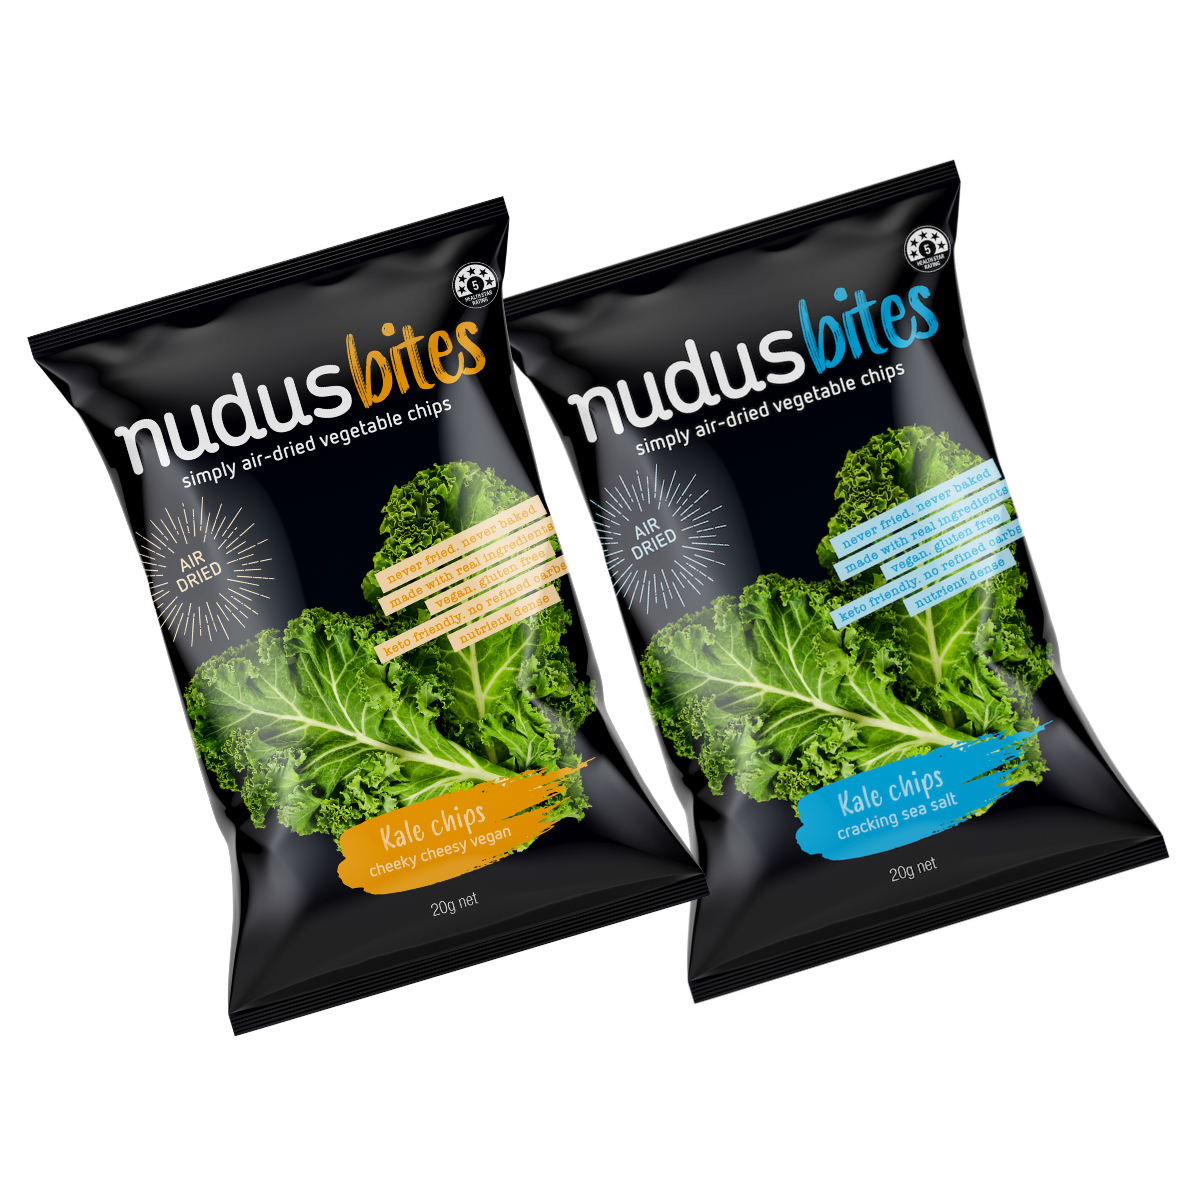 Kale Chips Mixed Box - 12 Packs ($3.20 / 20g Pack)